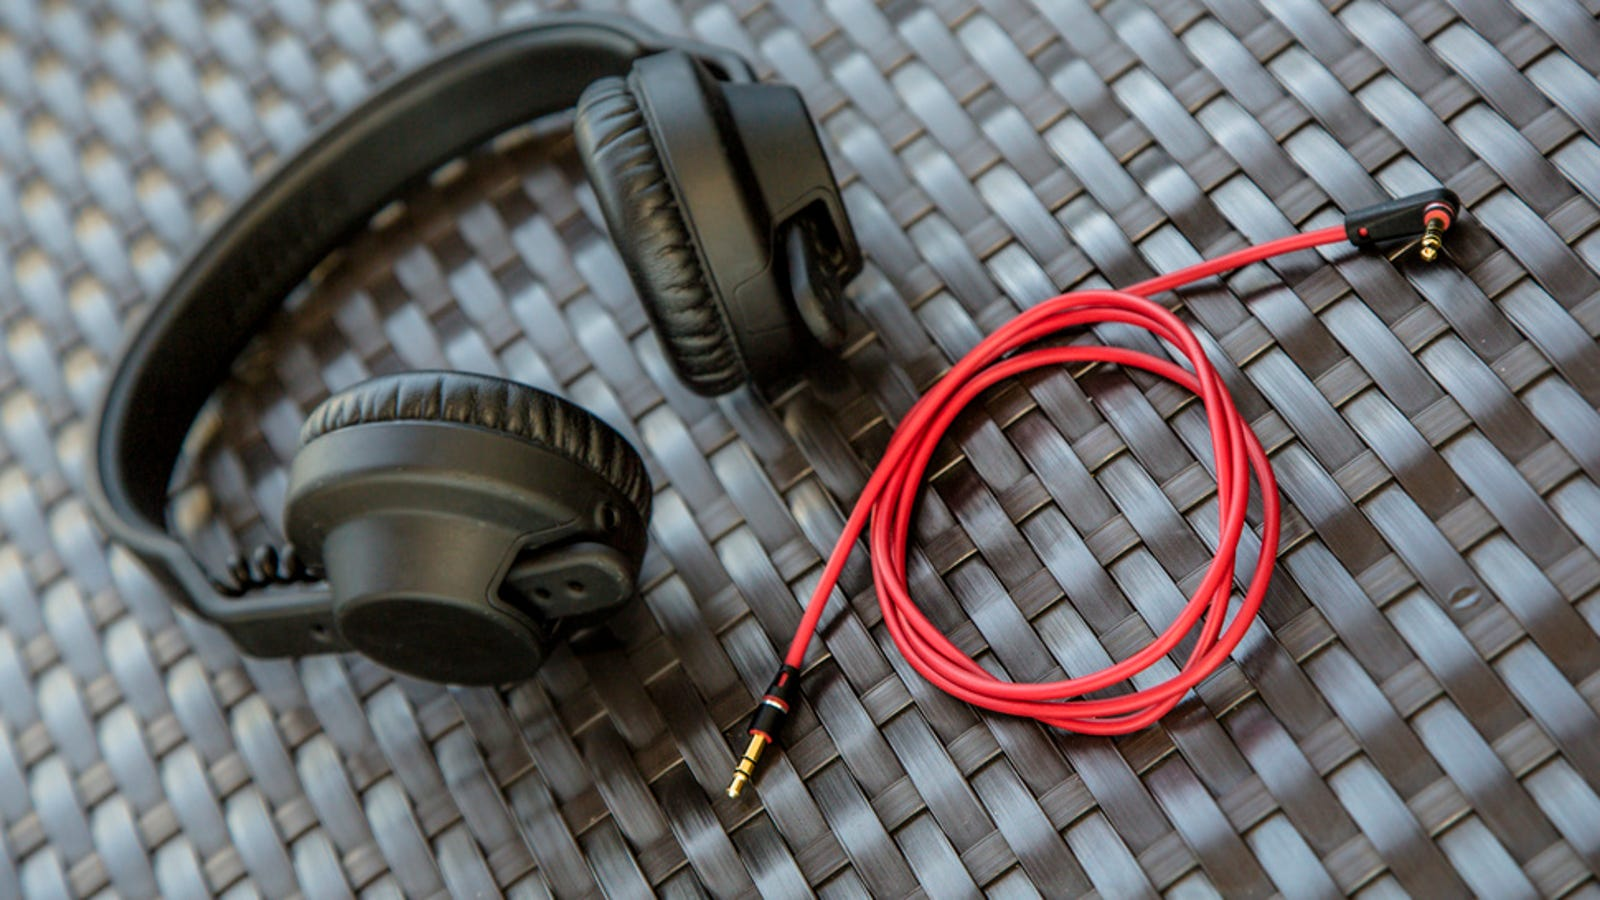 lg wireless gaming headphones - Getting a Shorter Headphone Cable Will Change Your Life